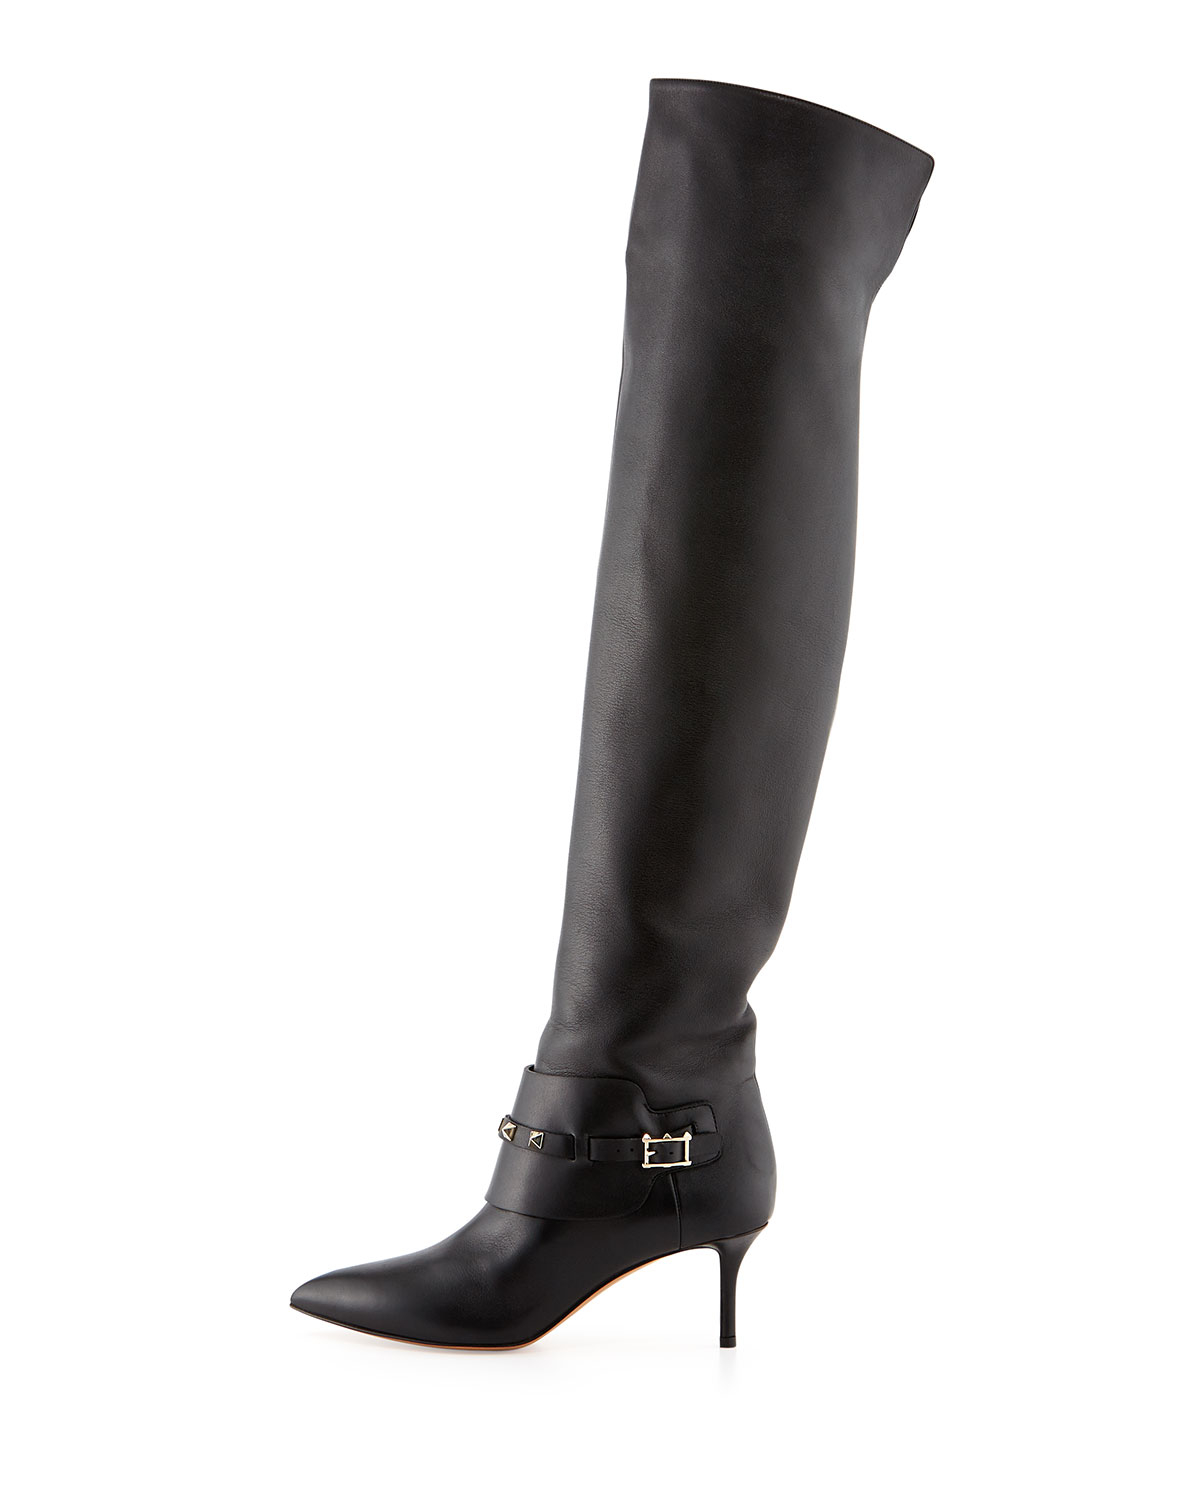 99de4ab70de Lyst - Valentino Rockstud Low-heel Over-the-knee Boot in Black